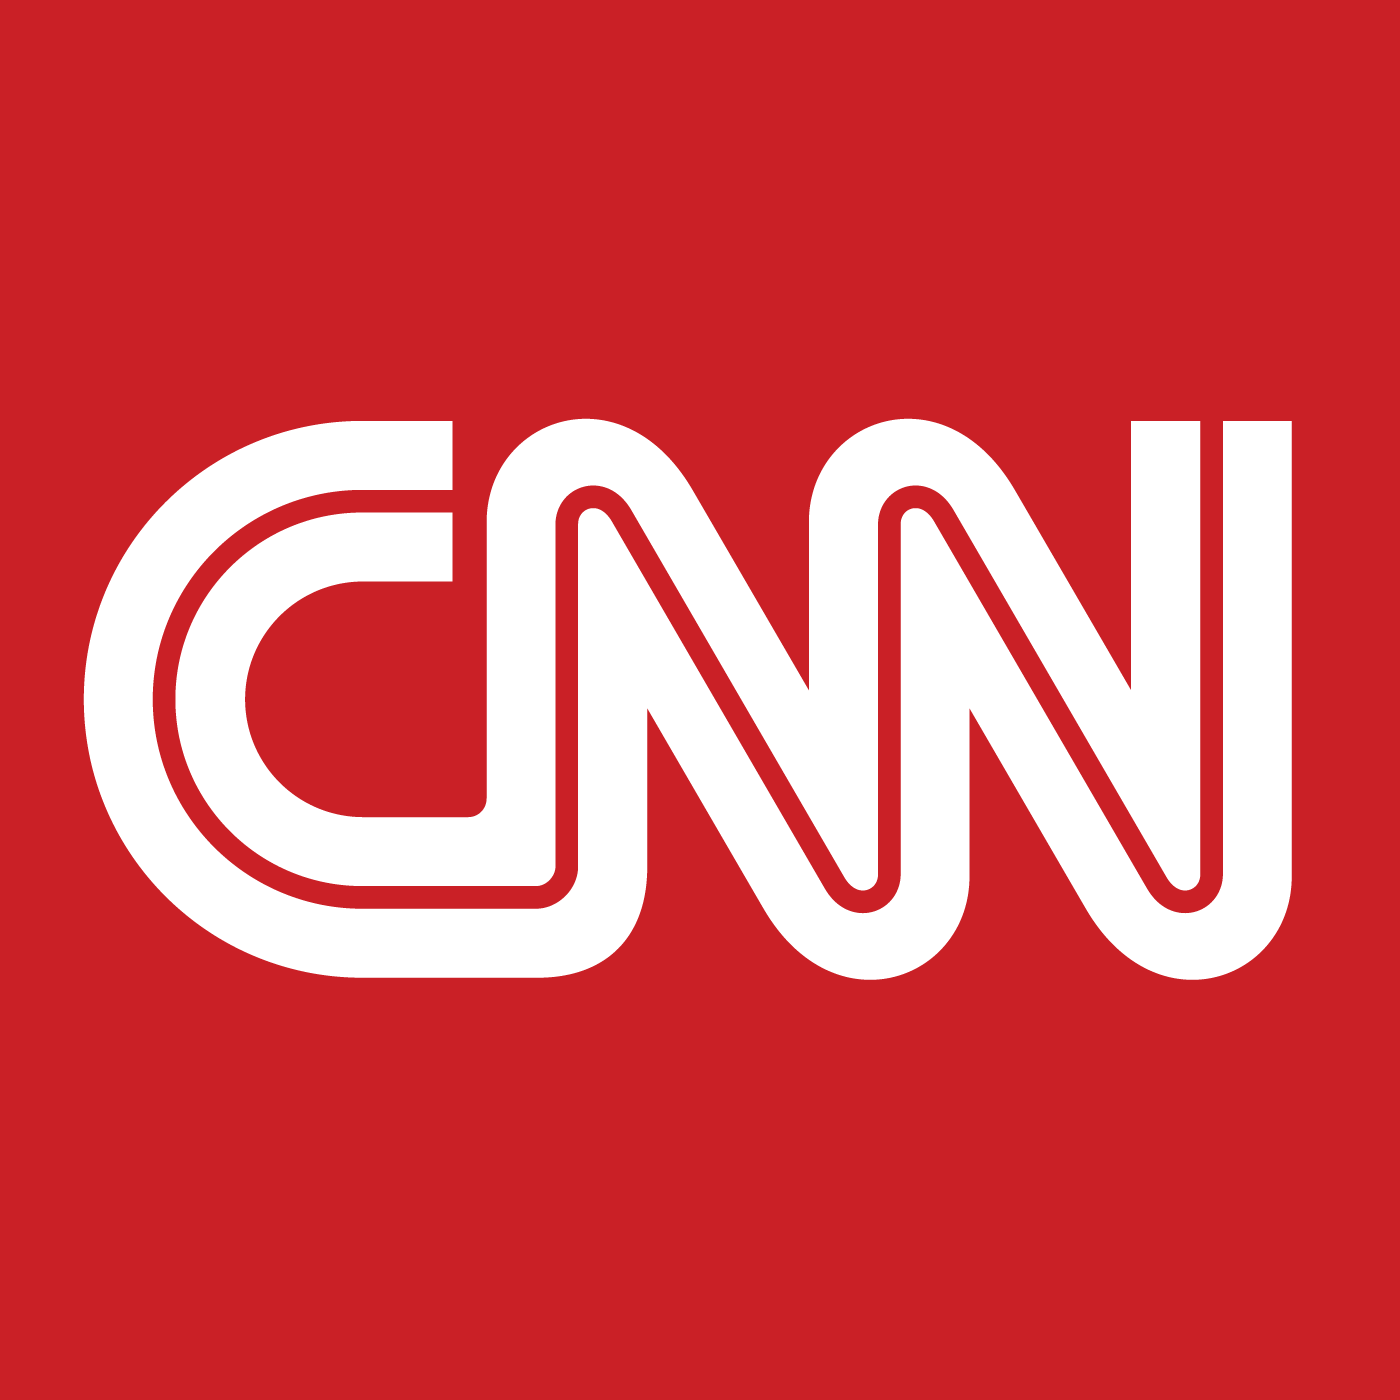 CNN Logo - cnn-logo-square - Obey Giant